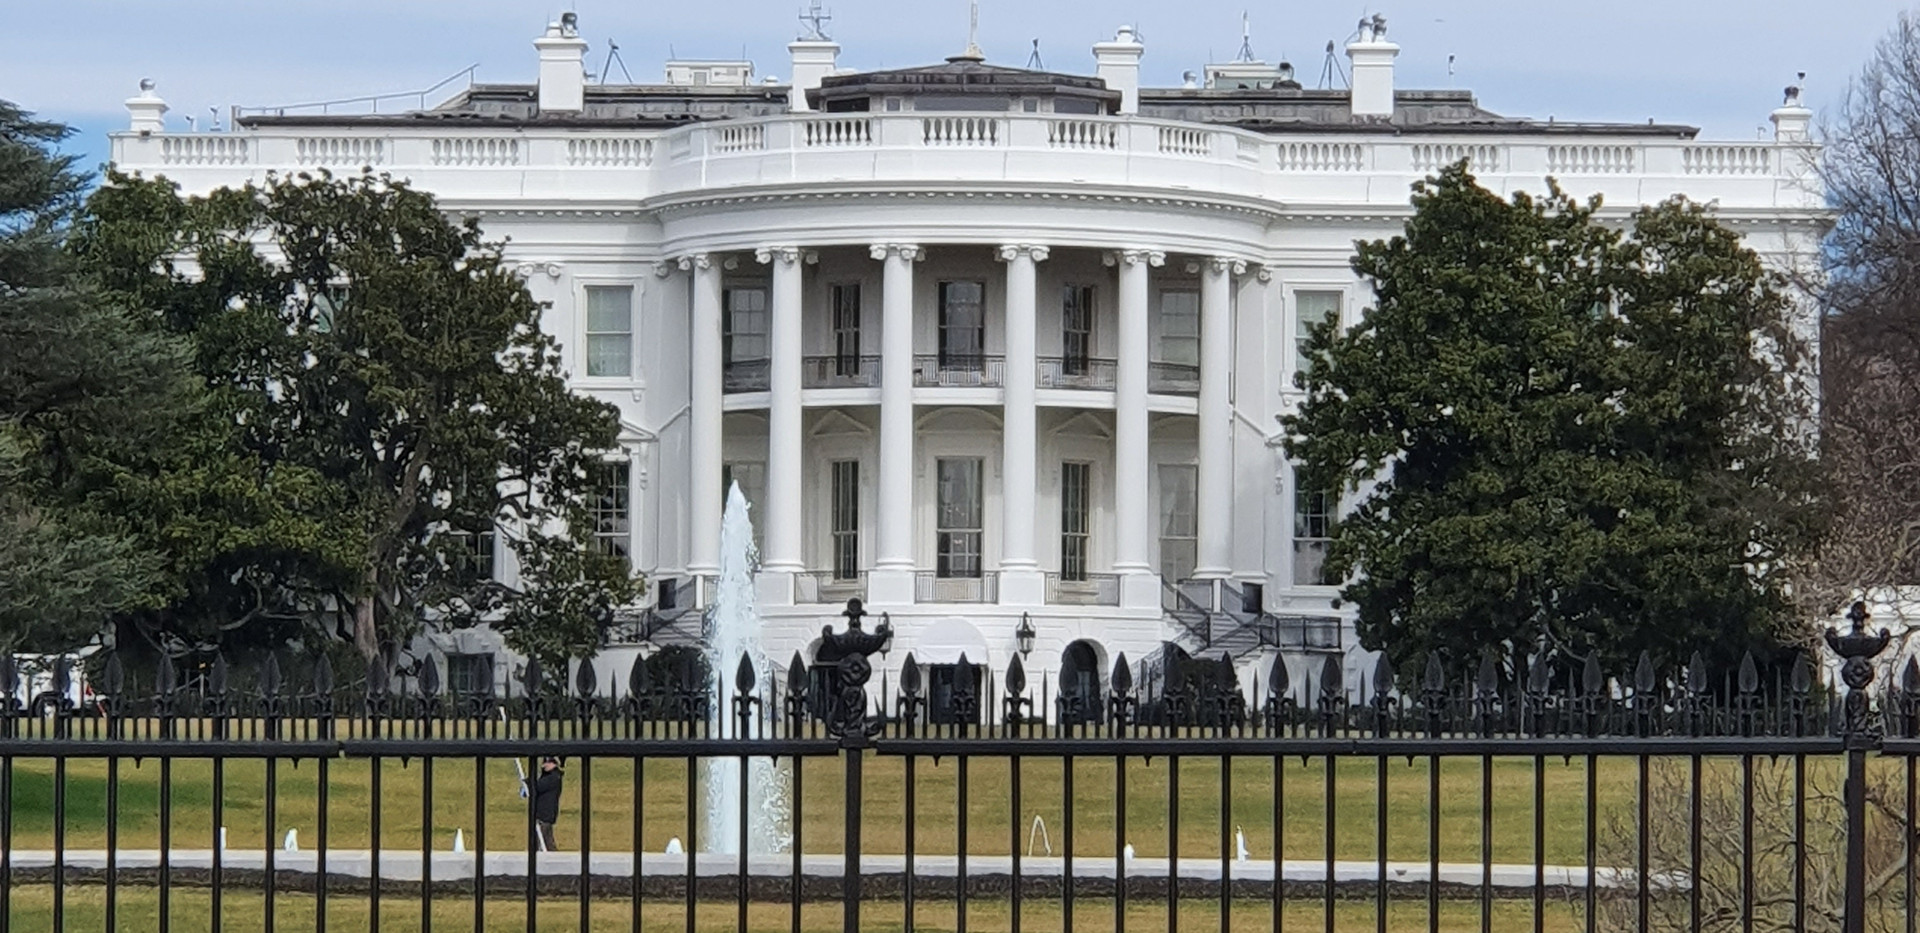 The White House/The Ellipse